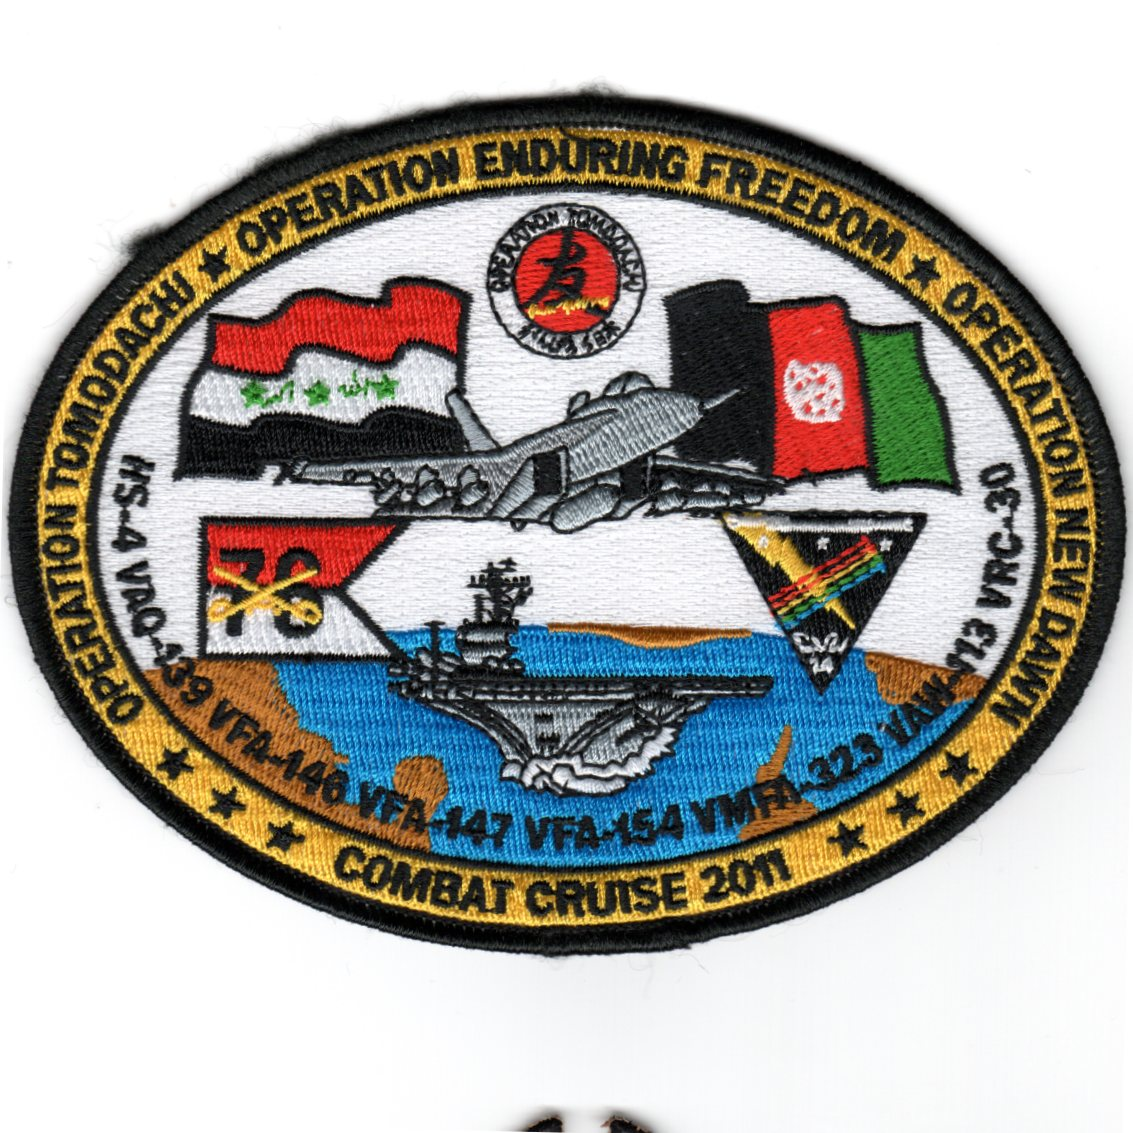 CVN-76/VFA-146 2011 OEF Cruise Patch (Oval)